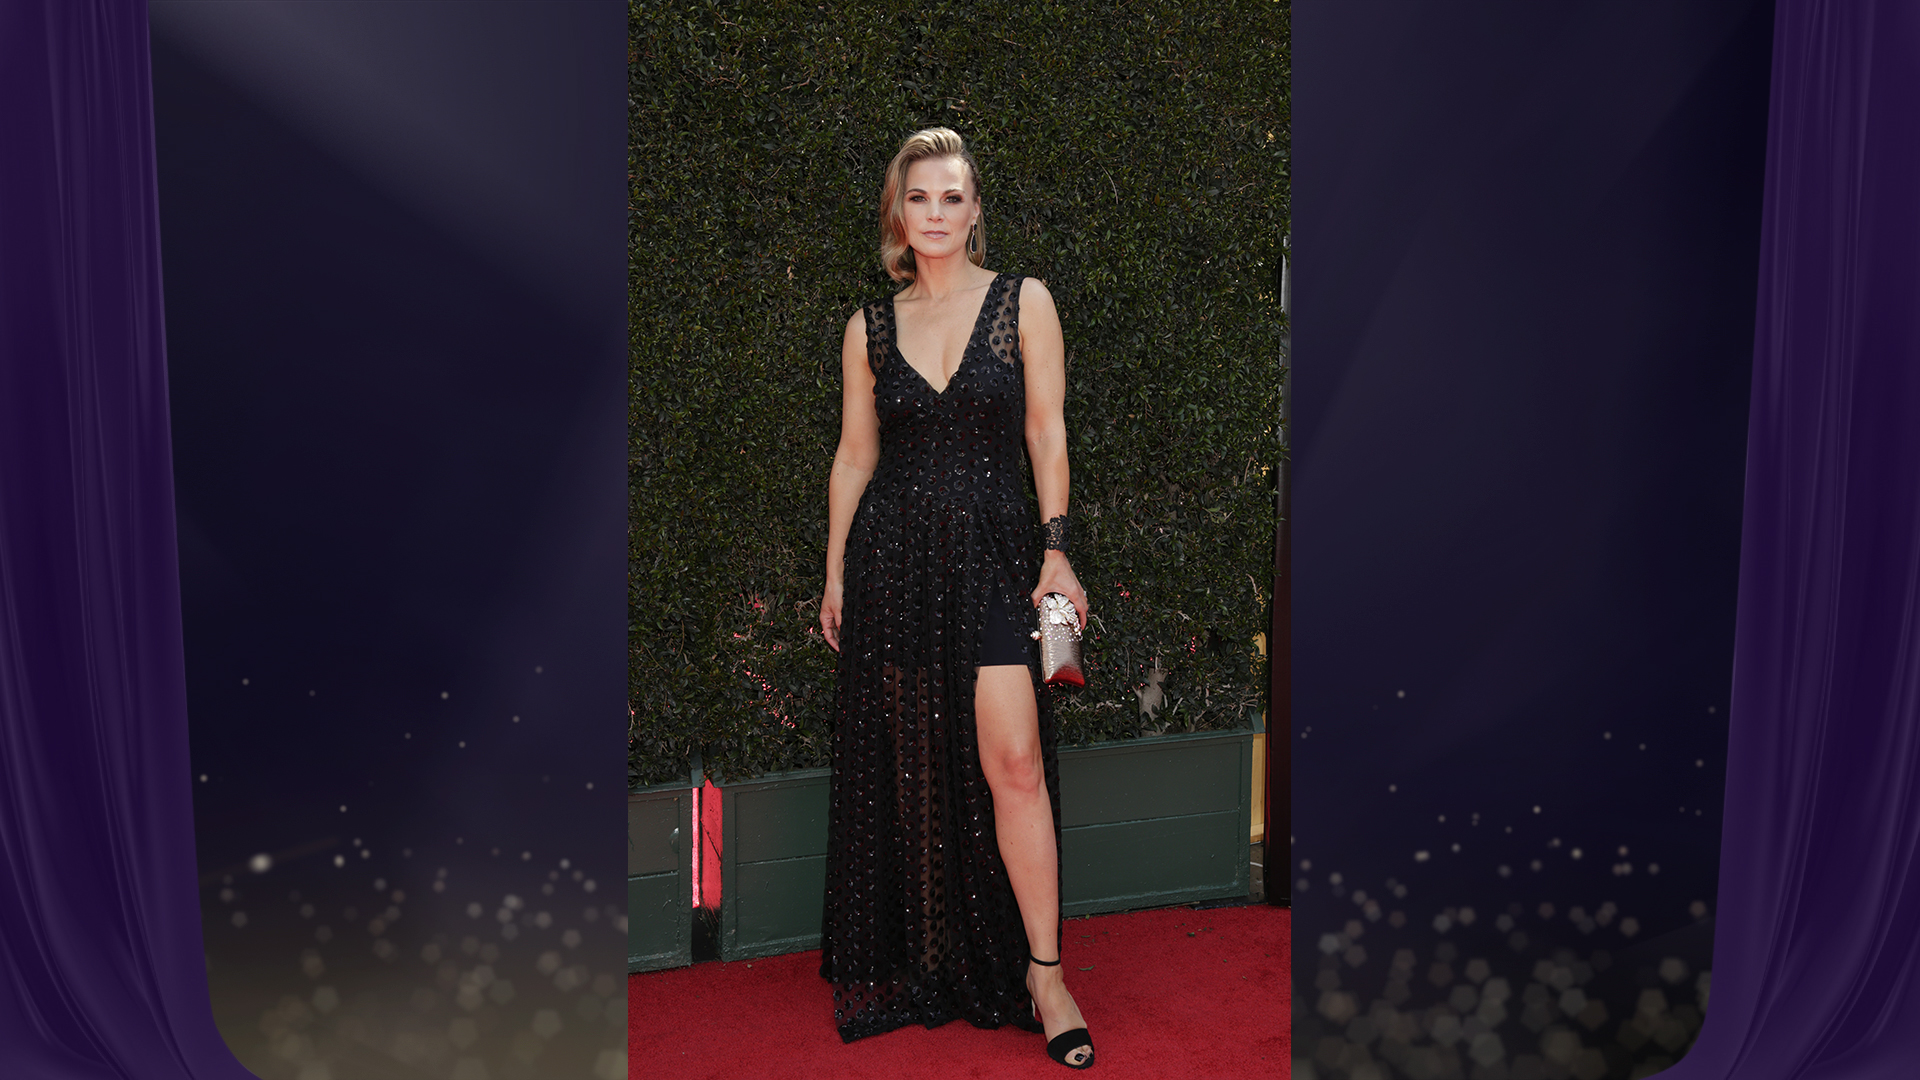 Gina Tognoni from The Young and the Restless wears a black mini dress draped in an overlay of black polka-dot chiffon.